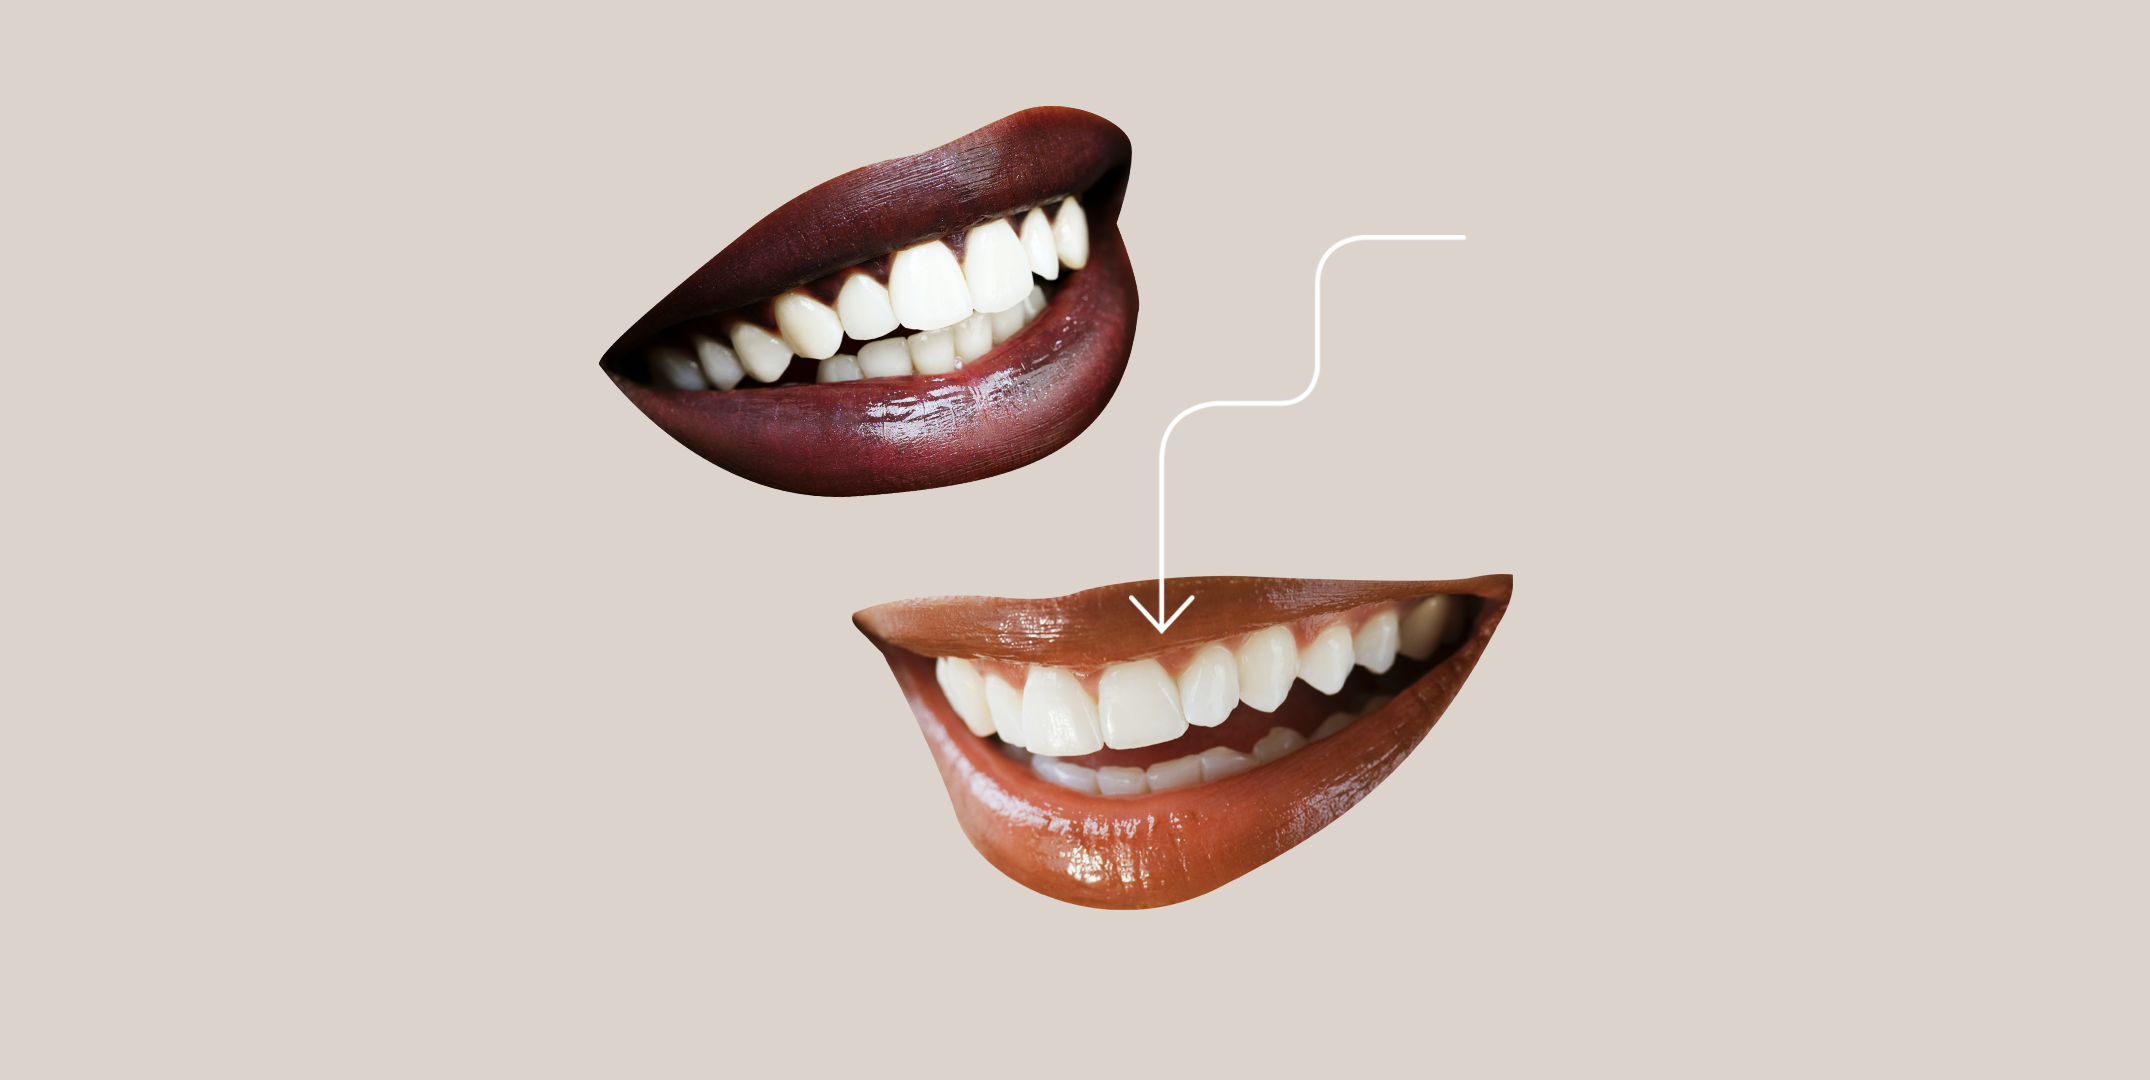 Dental Veneers Guide for 7: The Cost, Risks, Procedure, and More